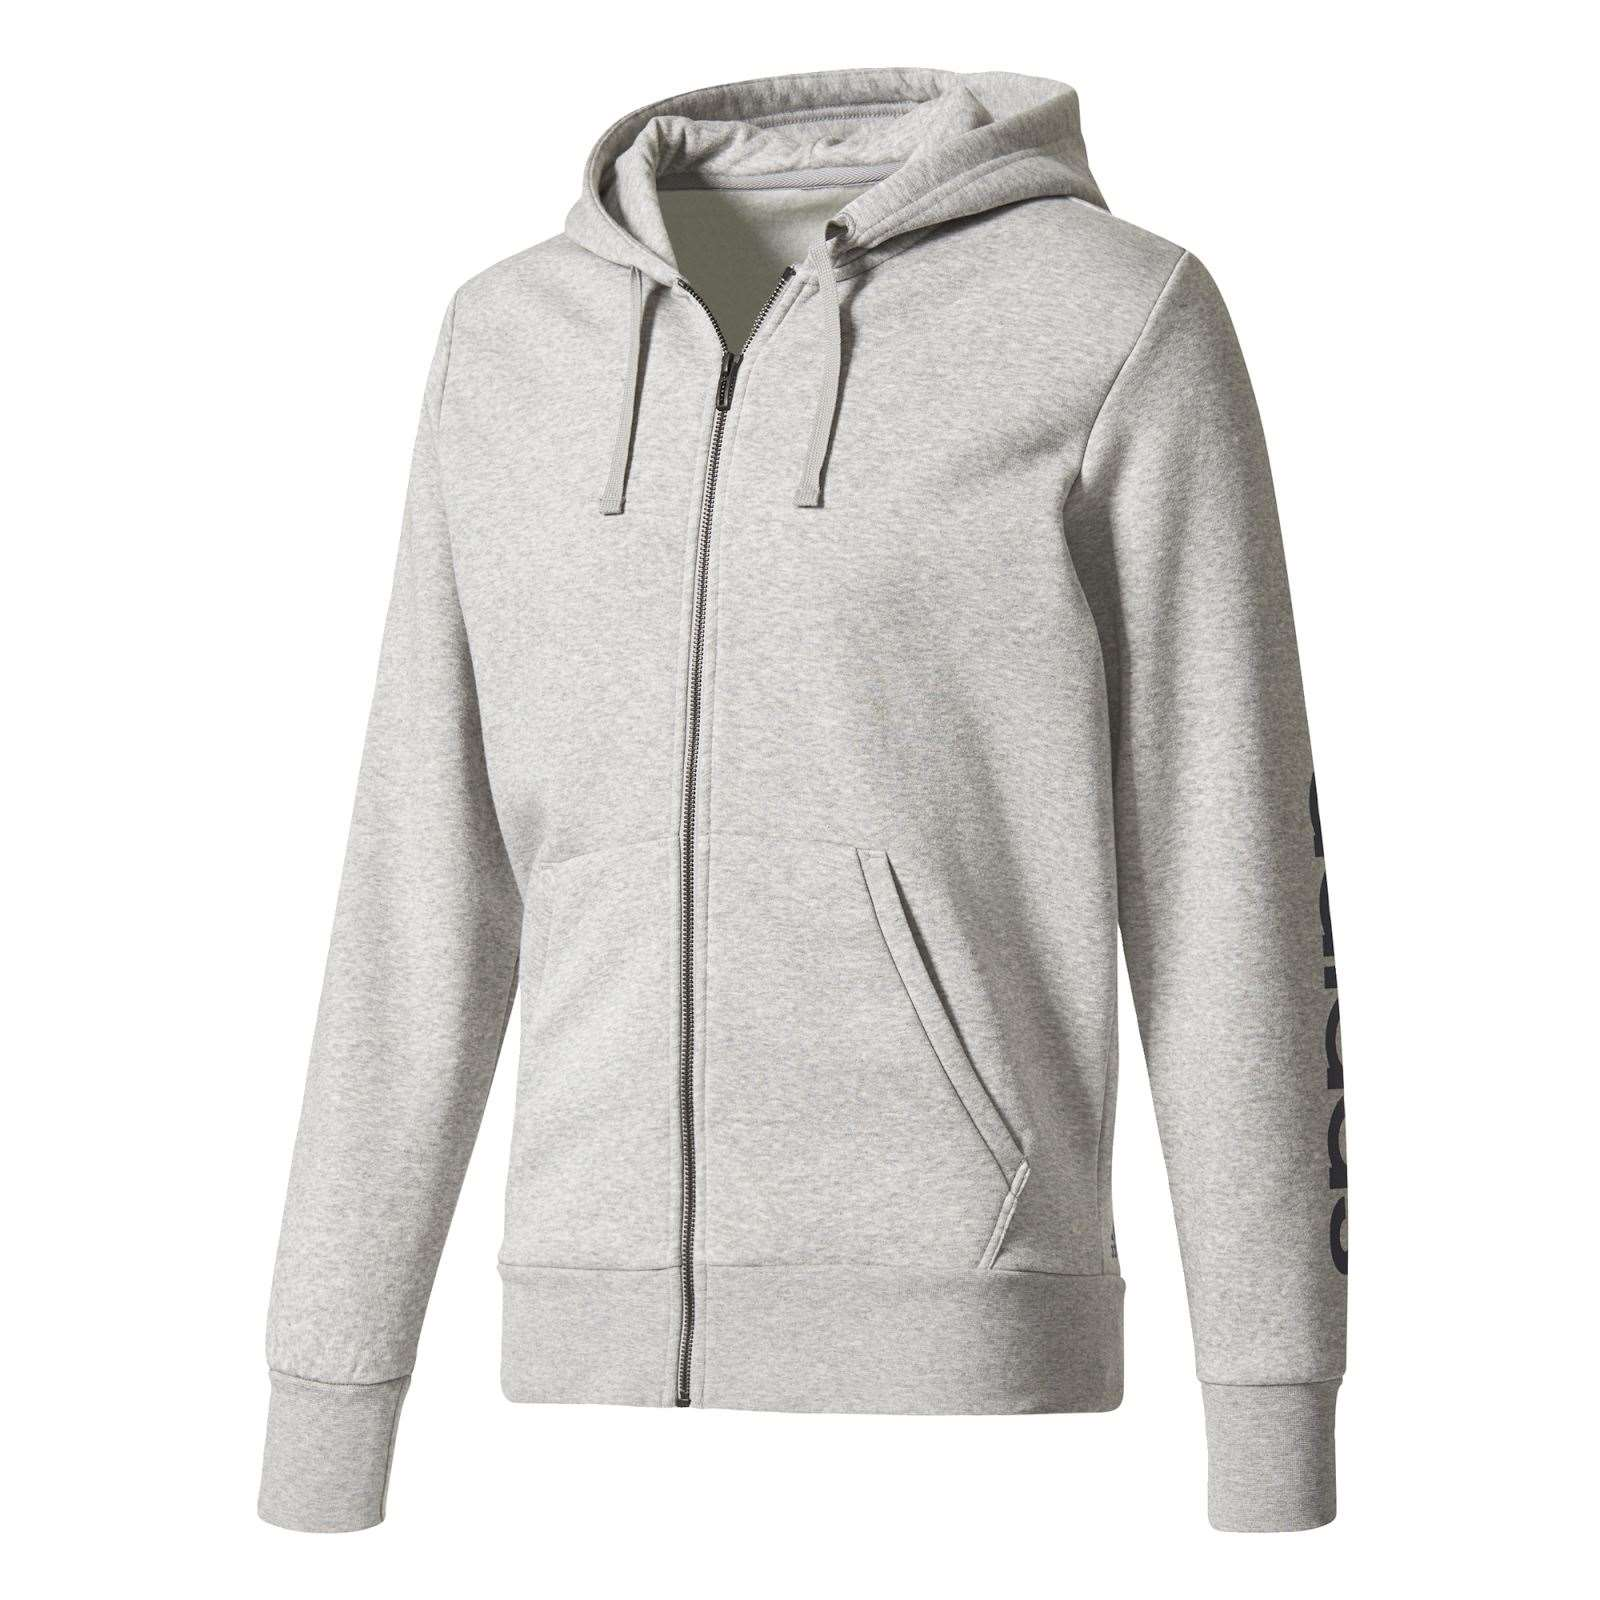 Gris Performance Capuche Adidas Brandalley À Sweat Clair wZCwfzqx